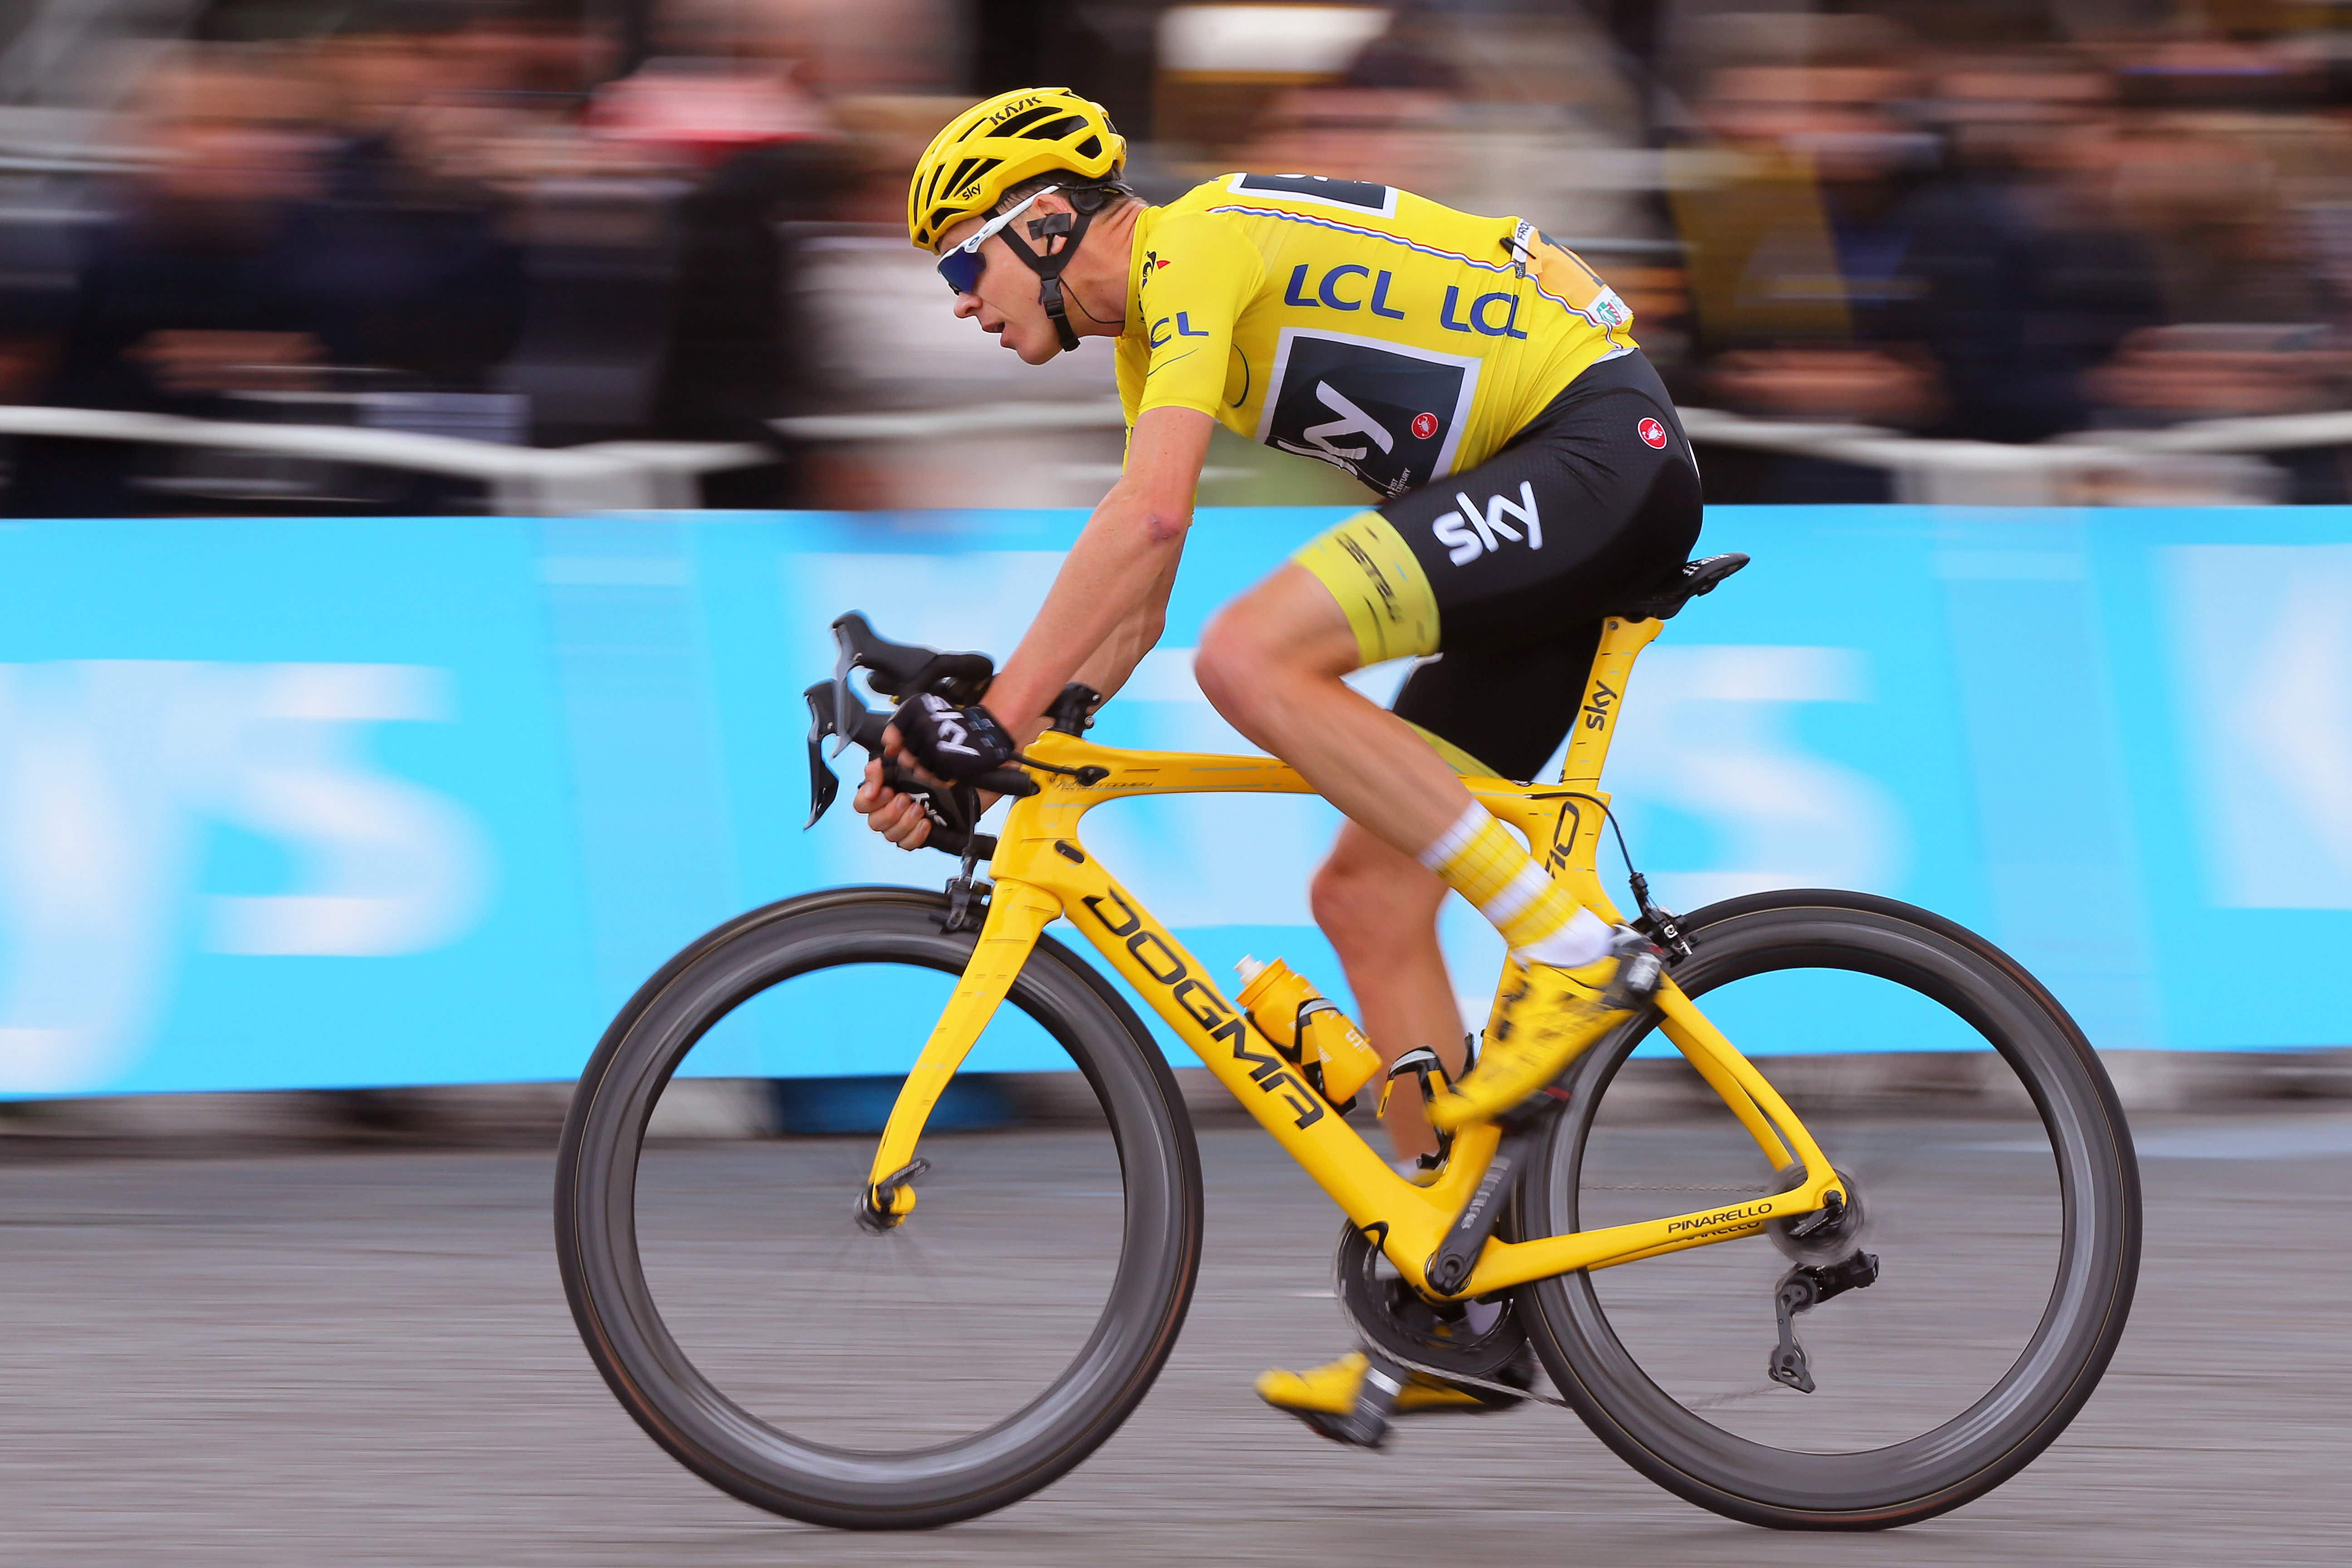 Race against Chris Froome at L'Étape in New South Wales' Snowy Mountains next December